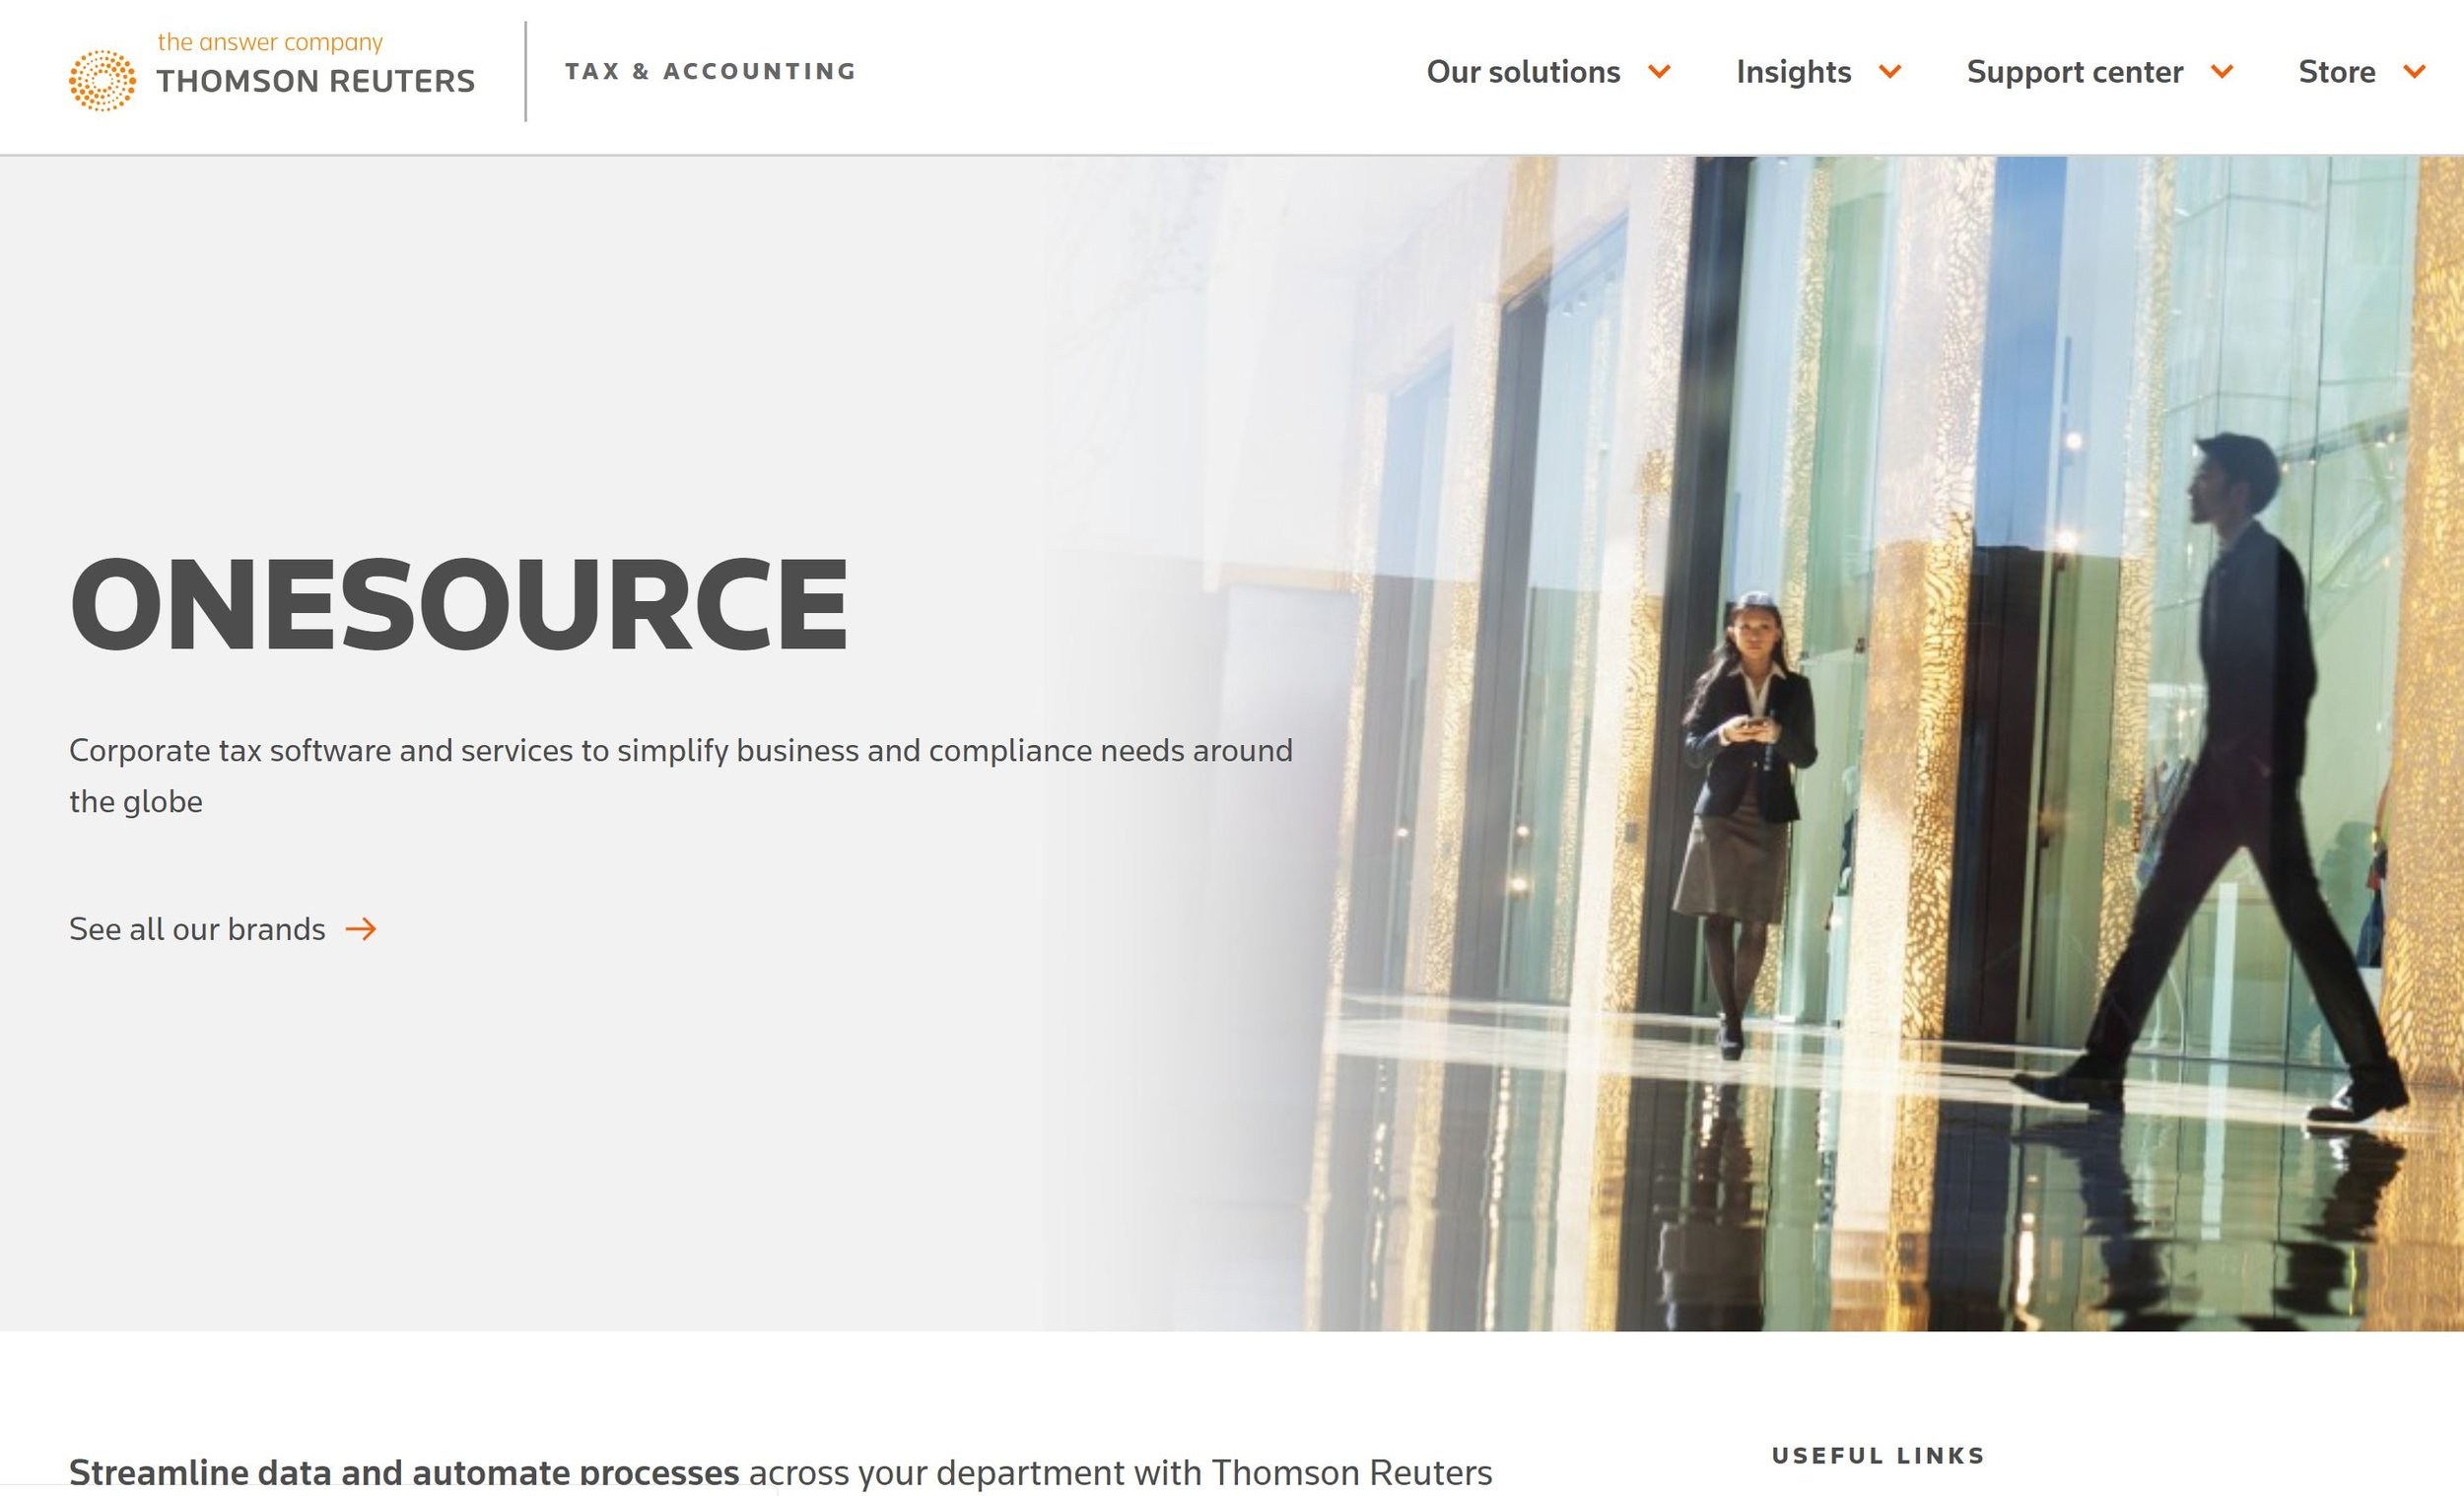 Thomson Reuters Onesource Corporate Tax Software and Services